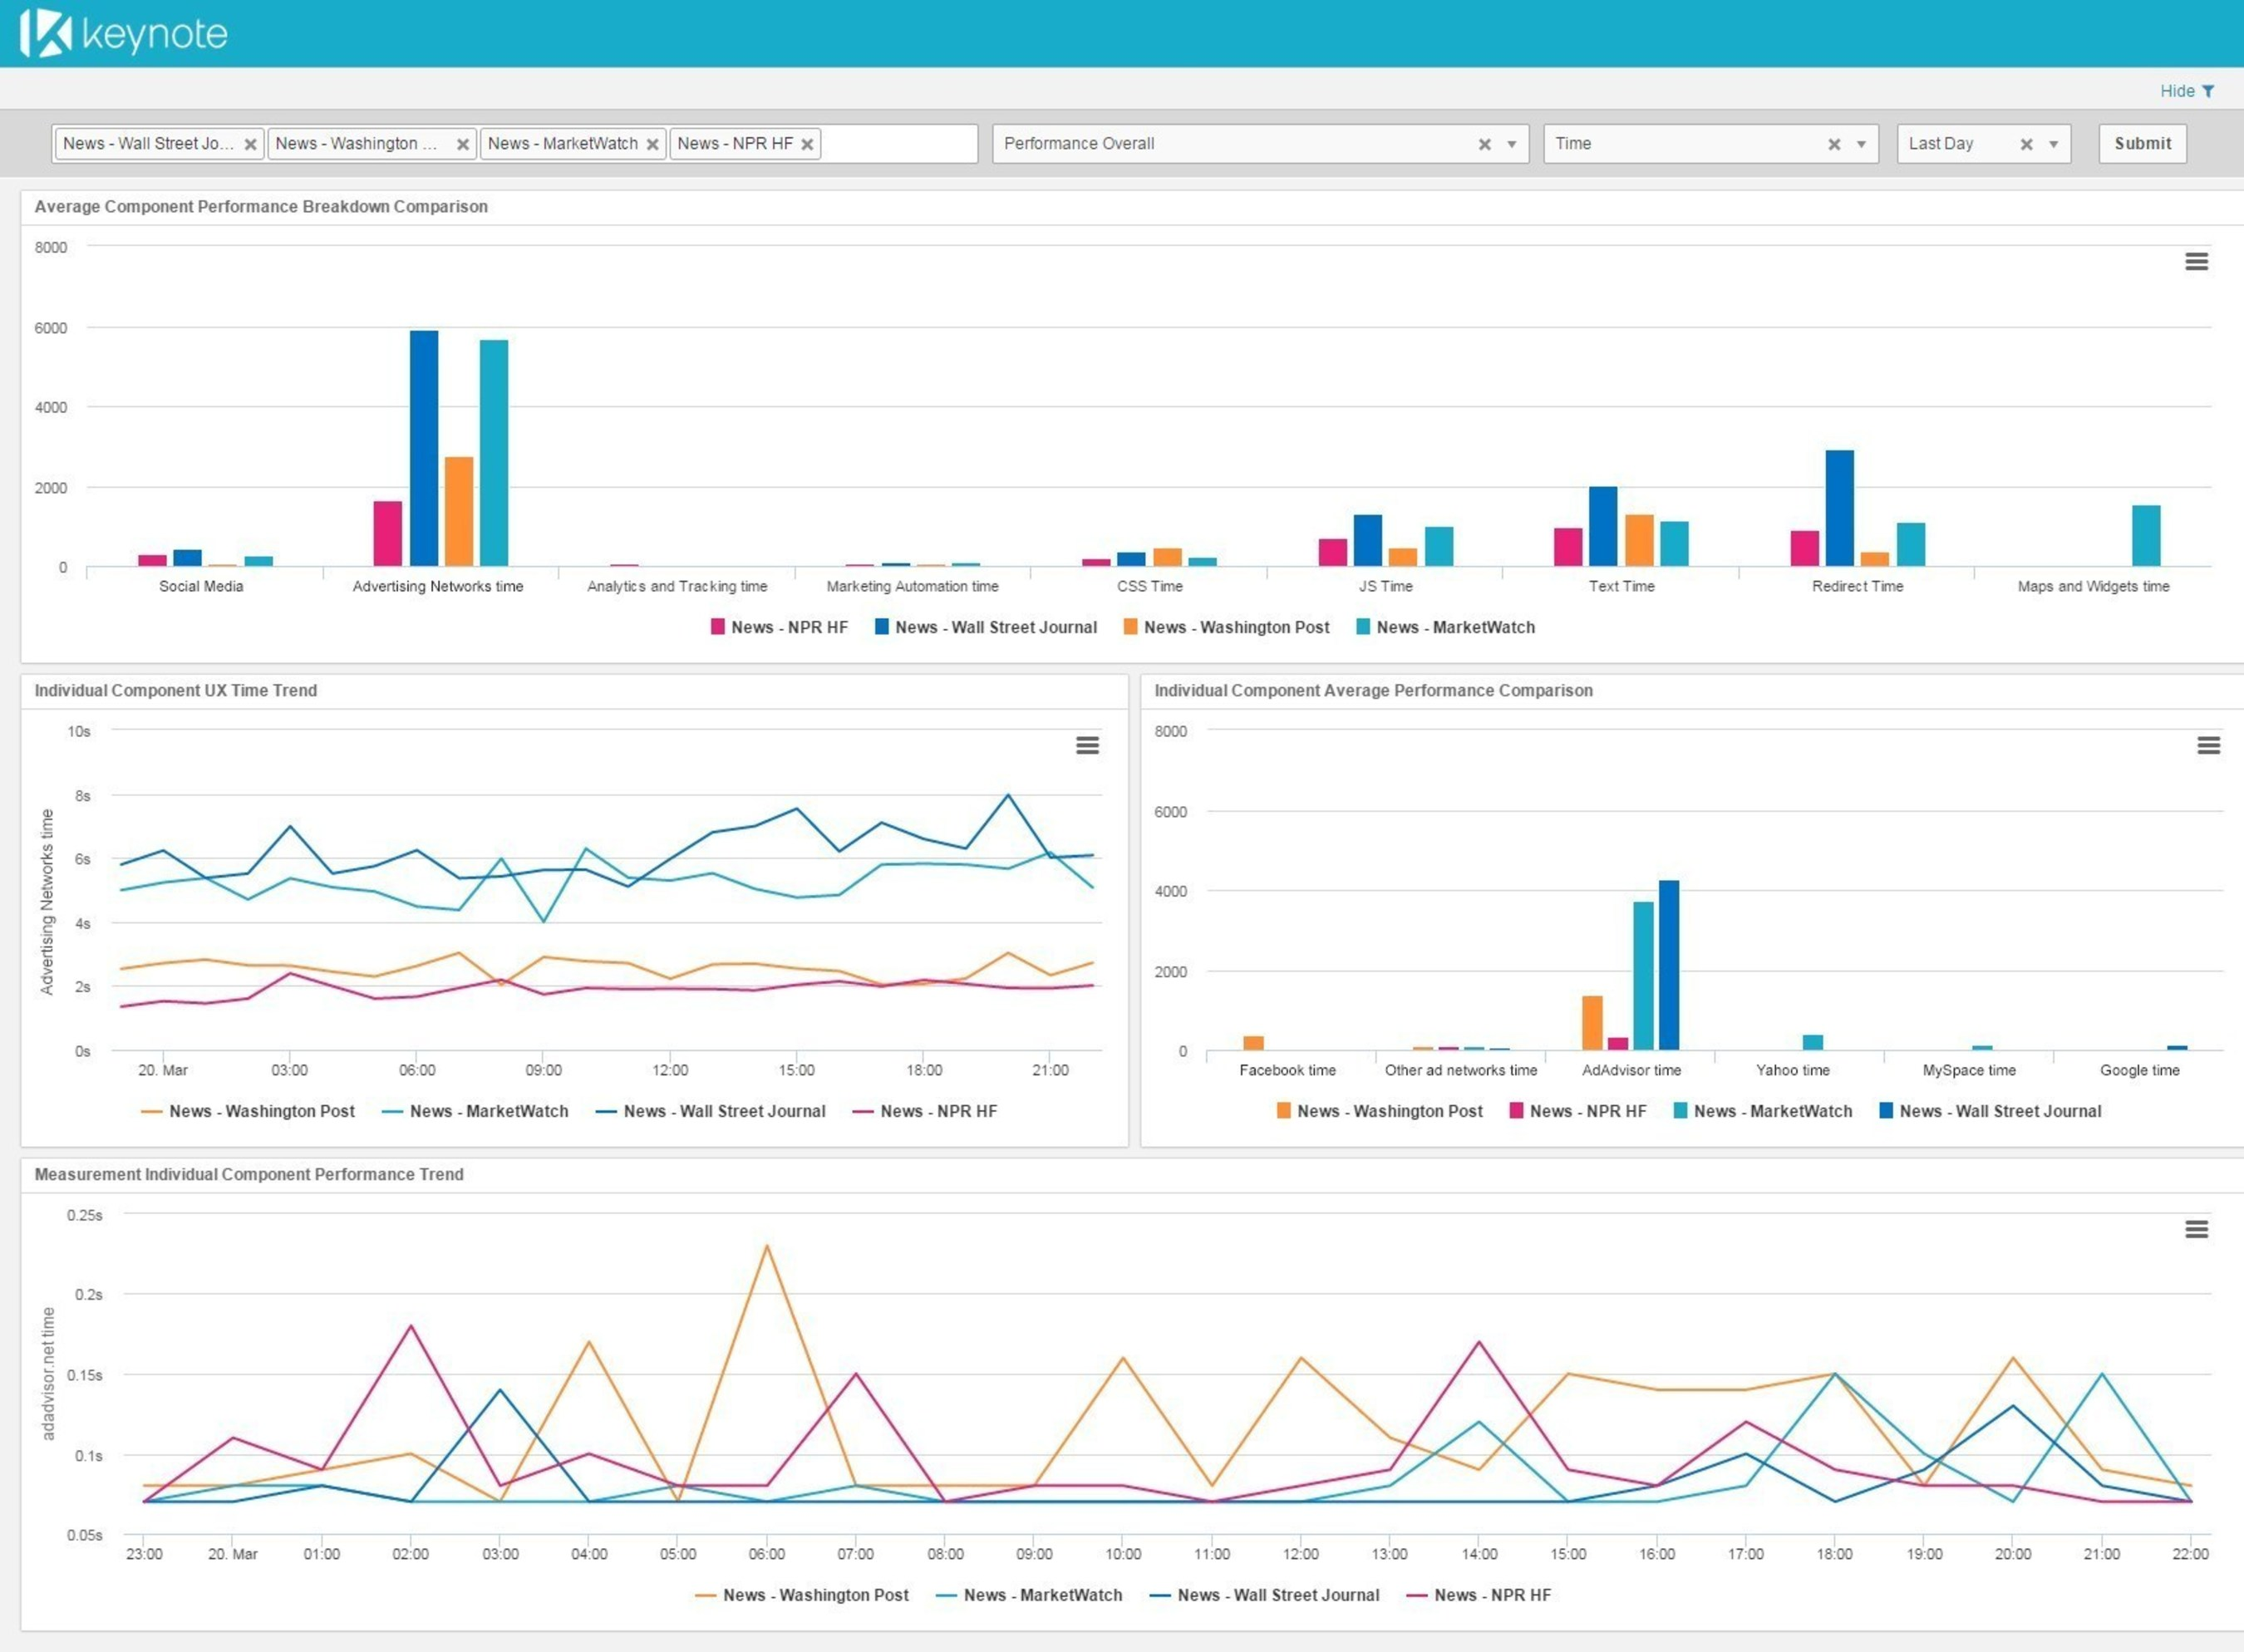 Keynote Introduces New Analytics Suite to Optimize the Performance of Digital Channels